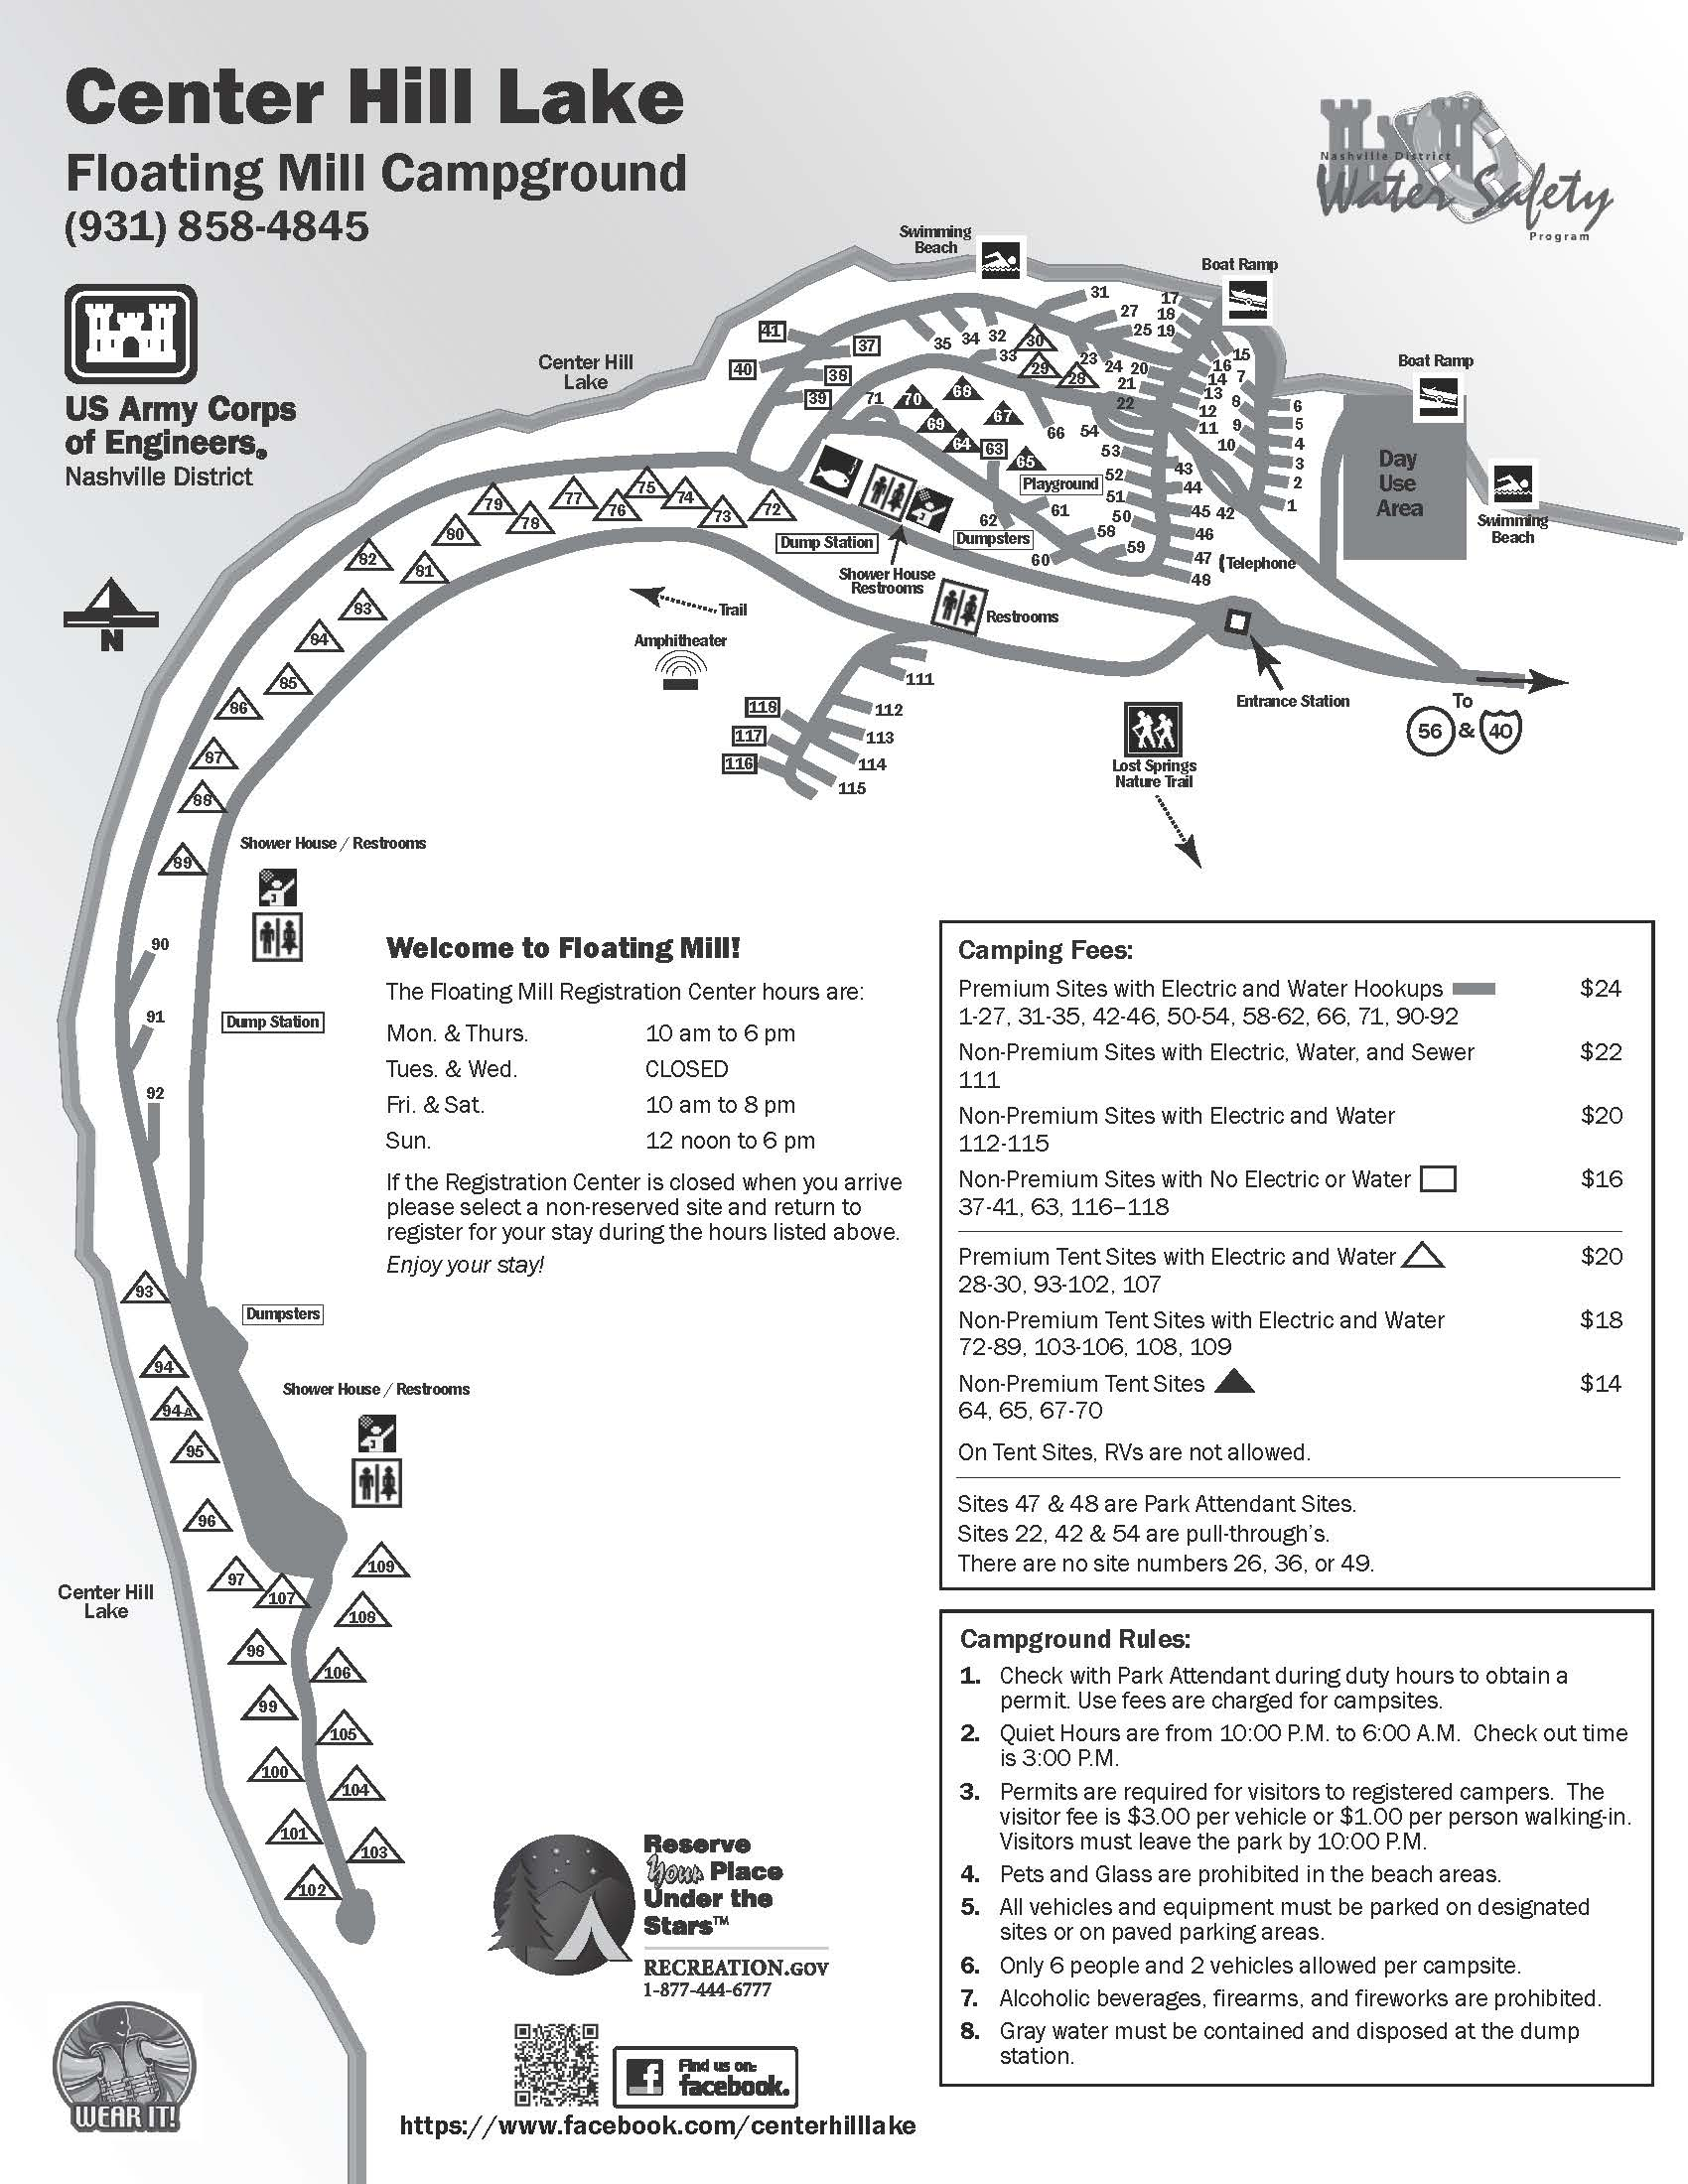 Floating Mill Campground Map at Center Hill Lake